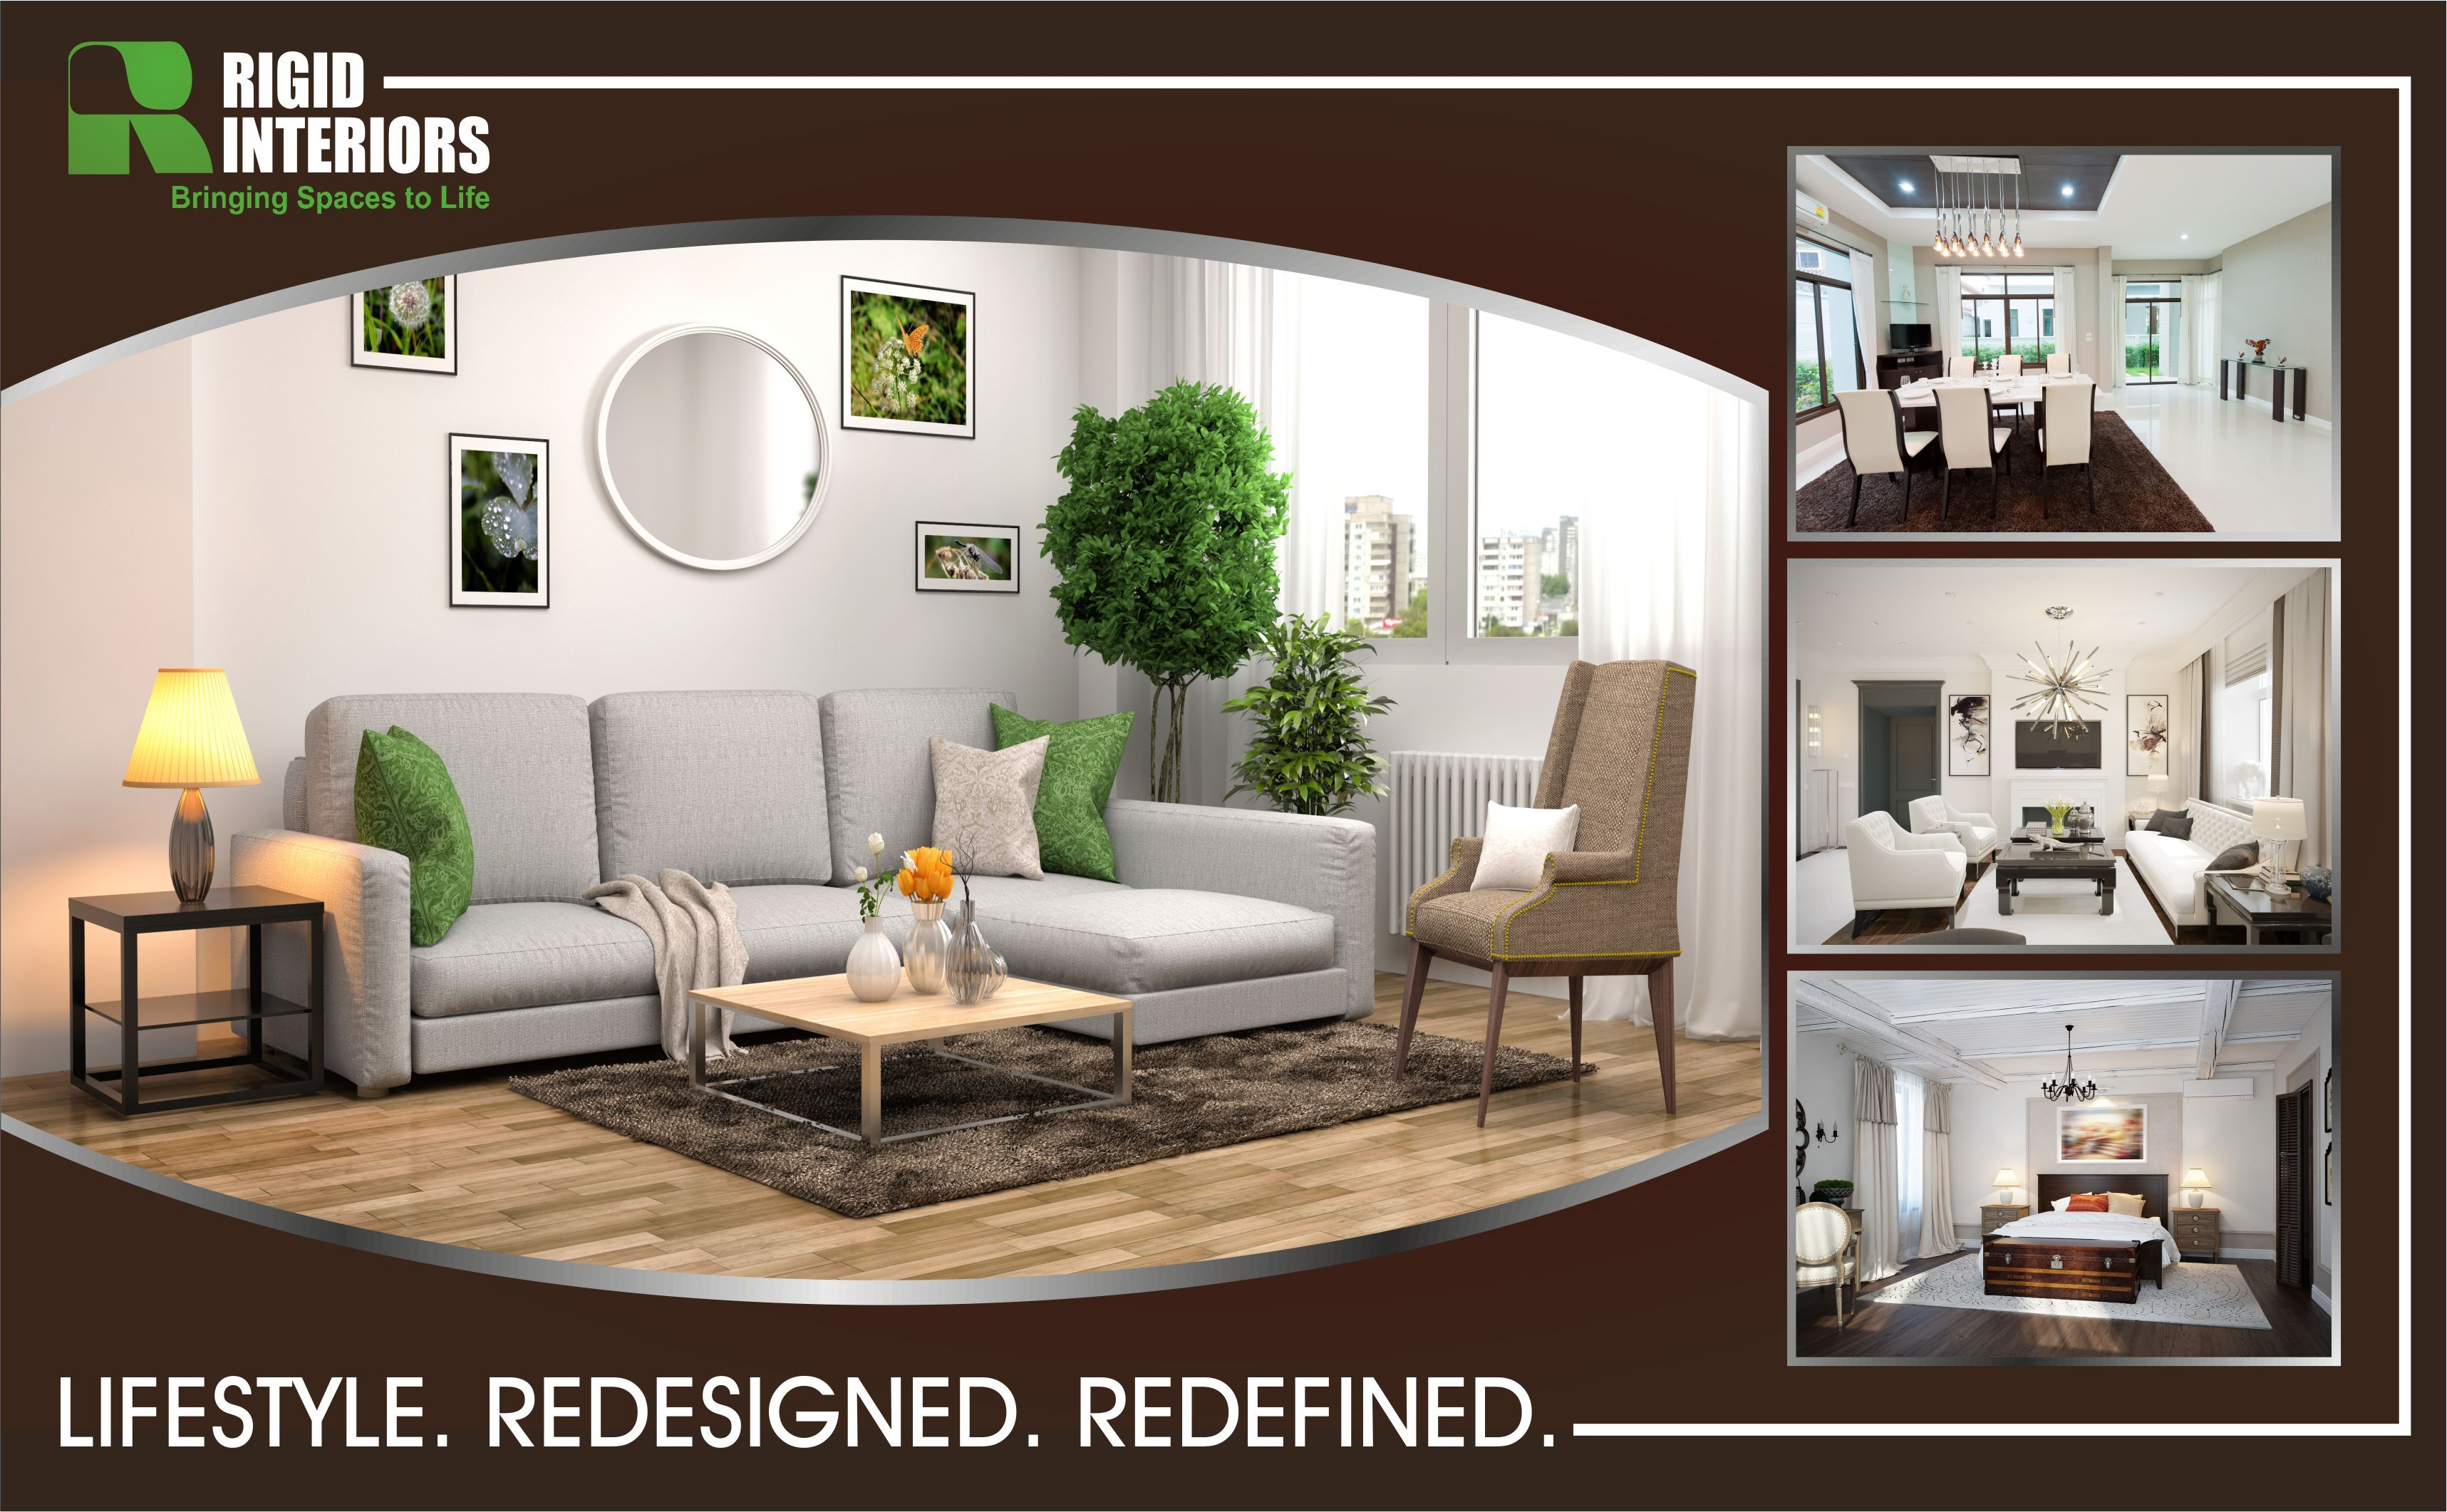 One Of The Best Interior Design Companies In Dubai, Rigid Interior Offers  Bespoke Designing Solutions That Fits All Your Requirements.